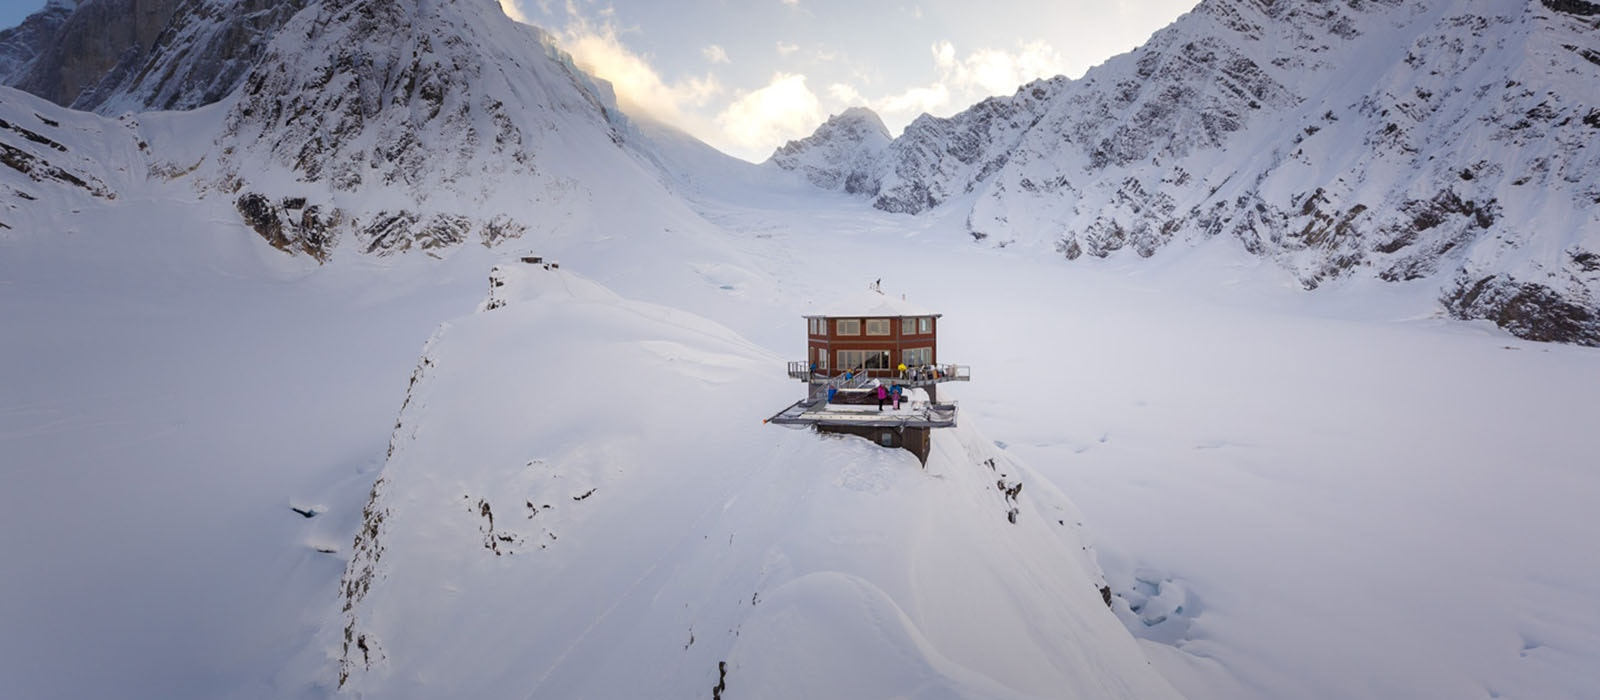 High up in the mountains of Denali National Park, Sheldon Chalet is a unlikely spot of luxury on a remote and rugged landscape.